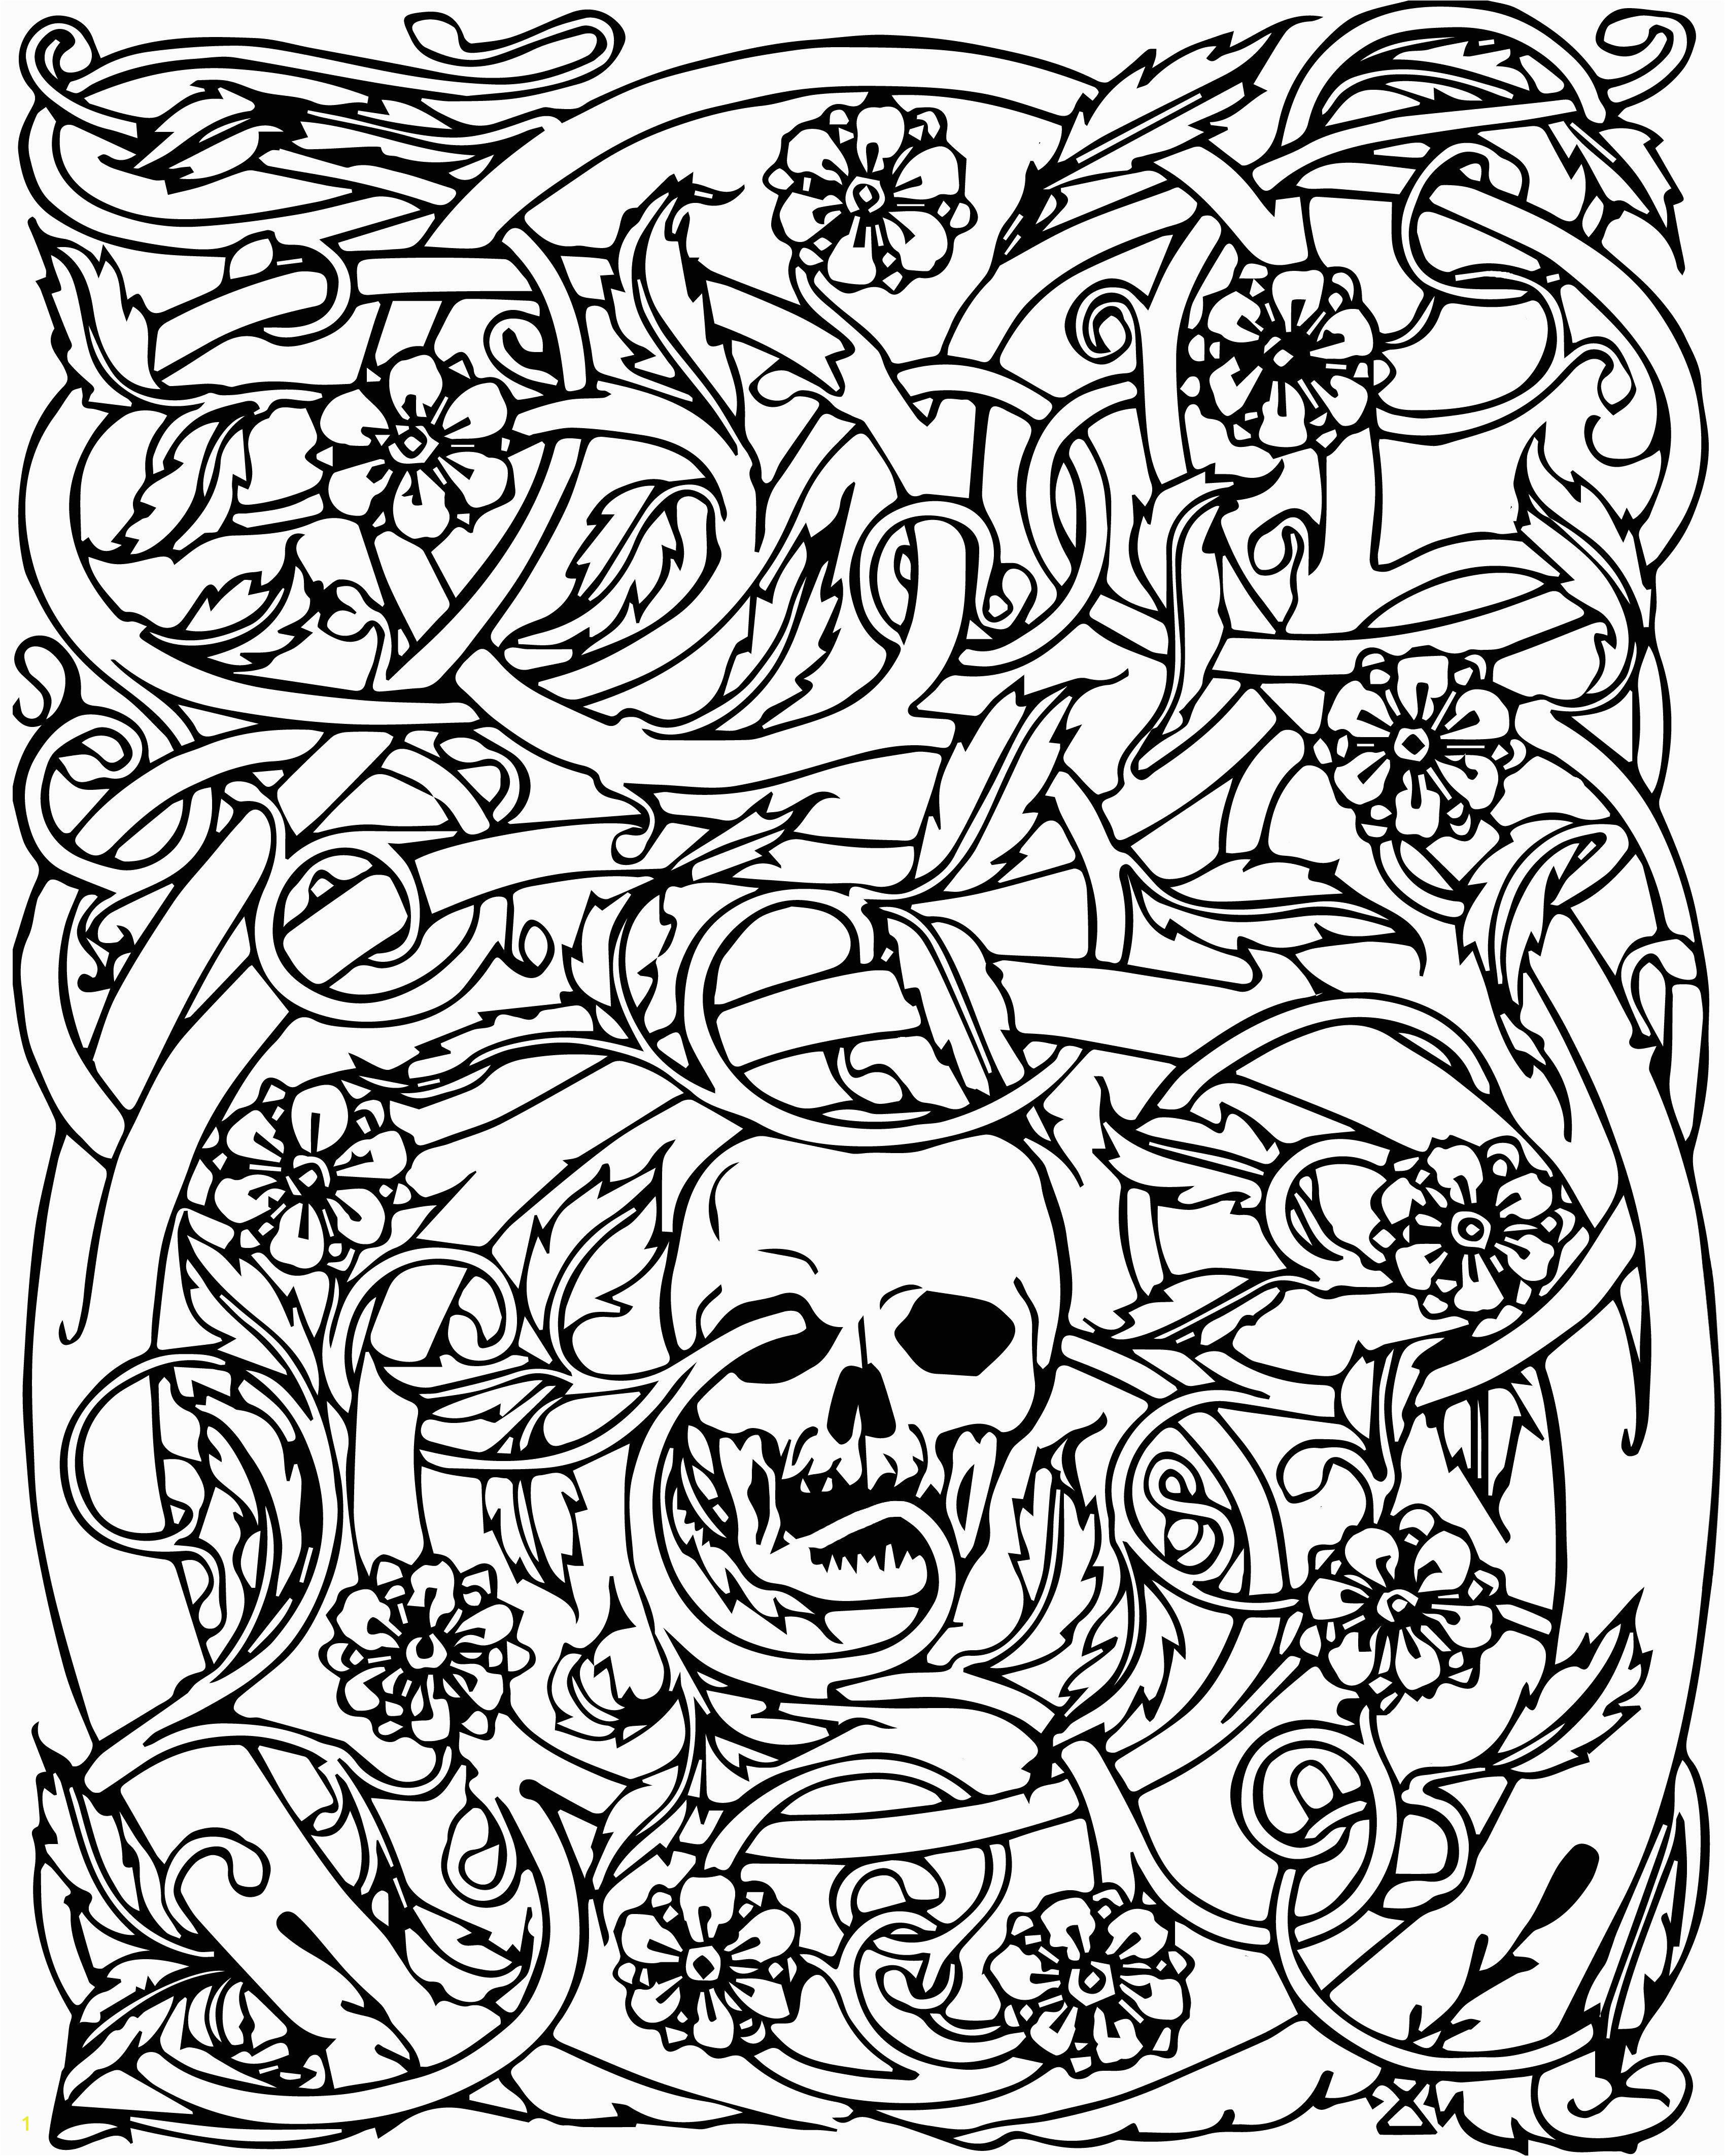 Coloring Pages for Flowers Stunning Coloring Pages For Flowers As Well As Cool Vases Flower